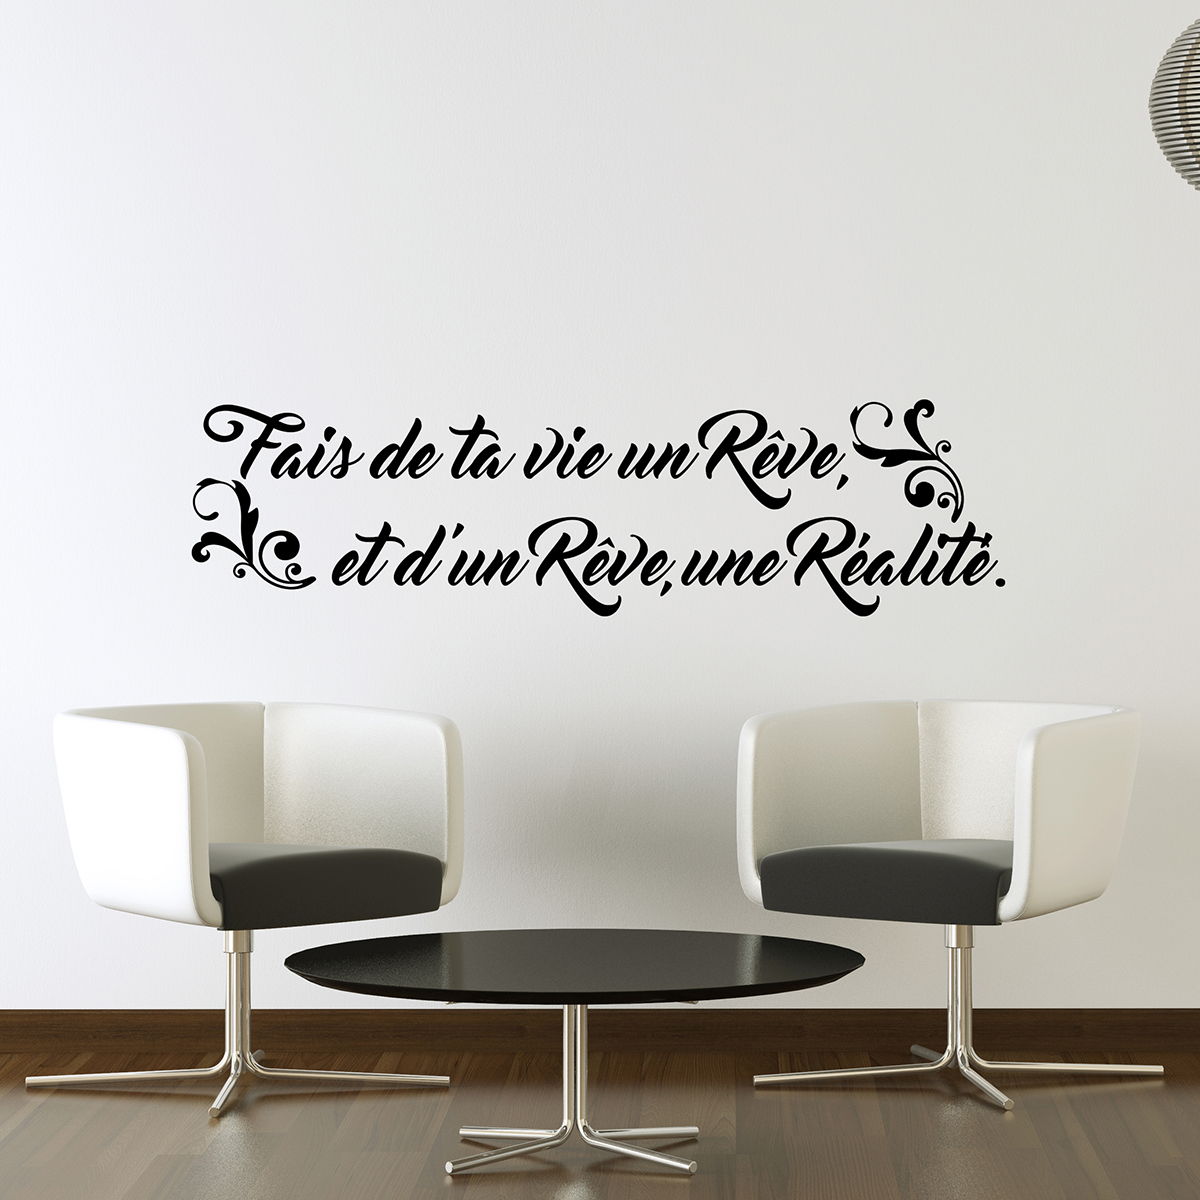 sticker citation fais de ta vie un r ve stickers. Black Bedroom Furniture Sets. Home Design Ideas